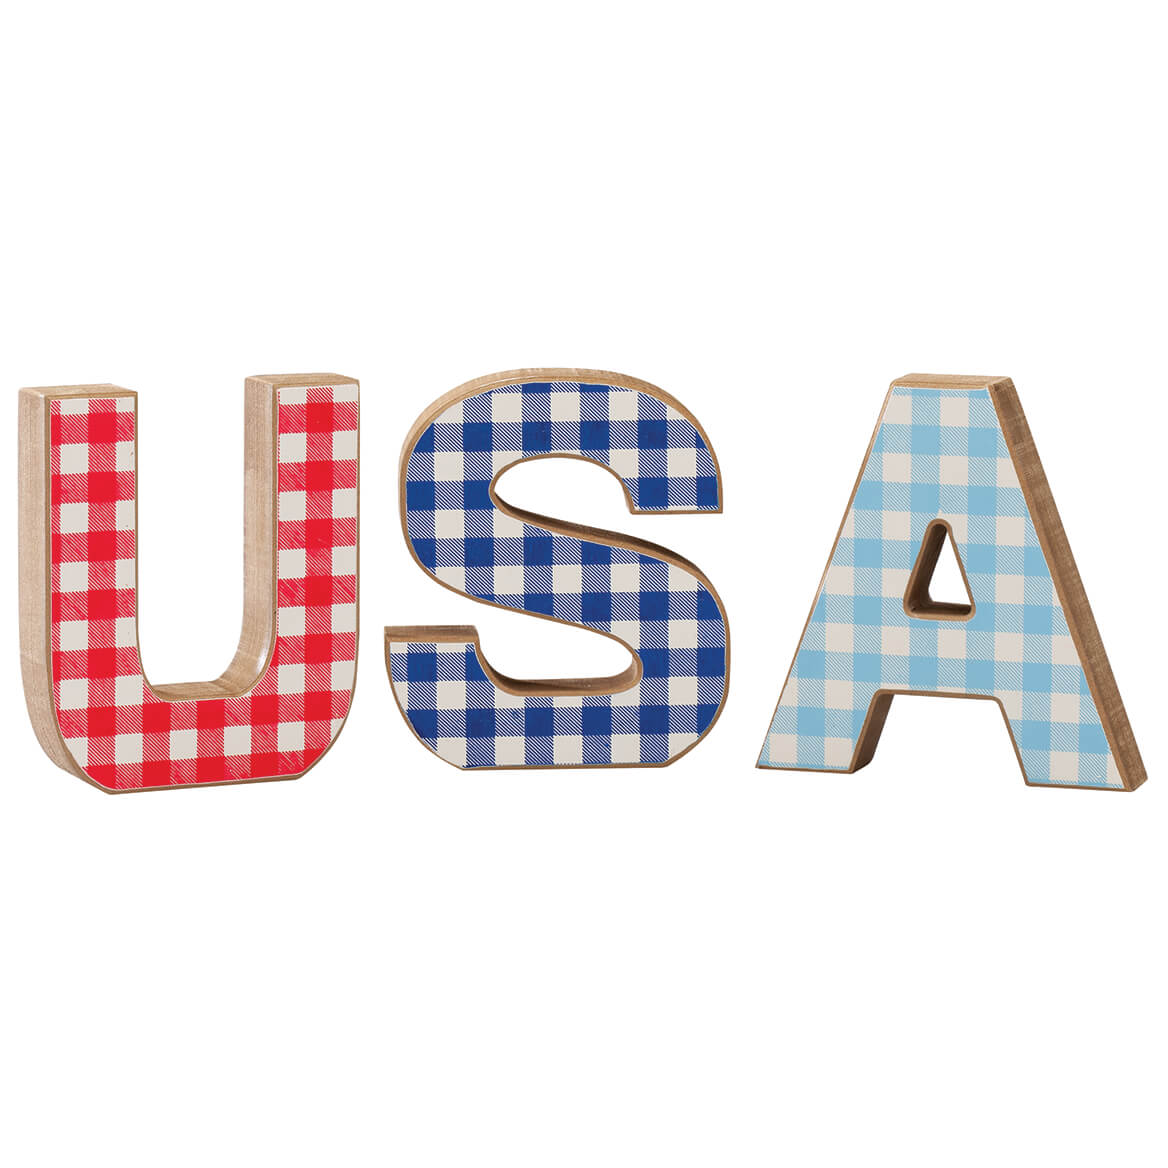 USA Wood Table Top Blocks by Holiday Peak™-371724